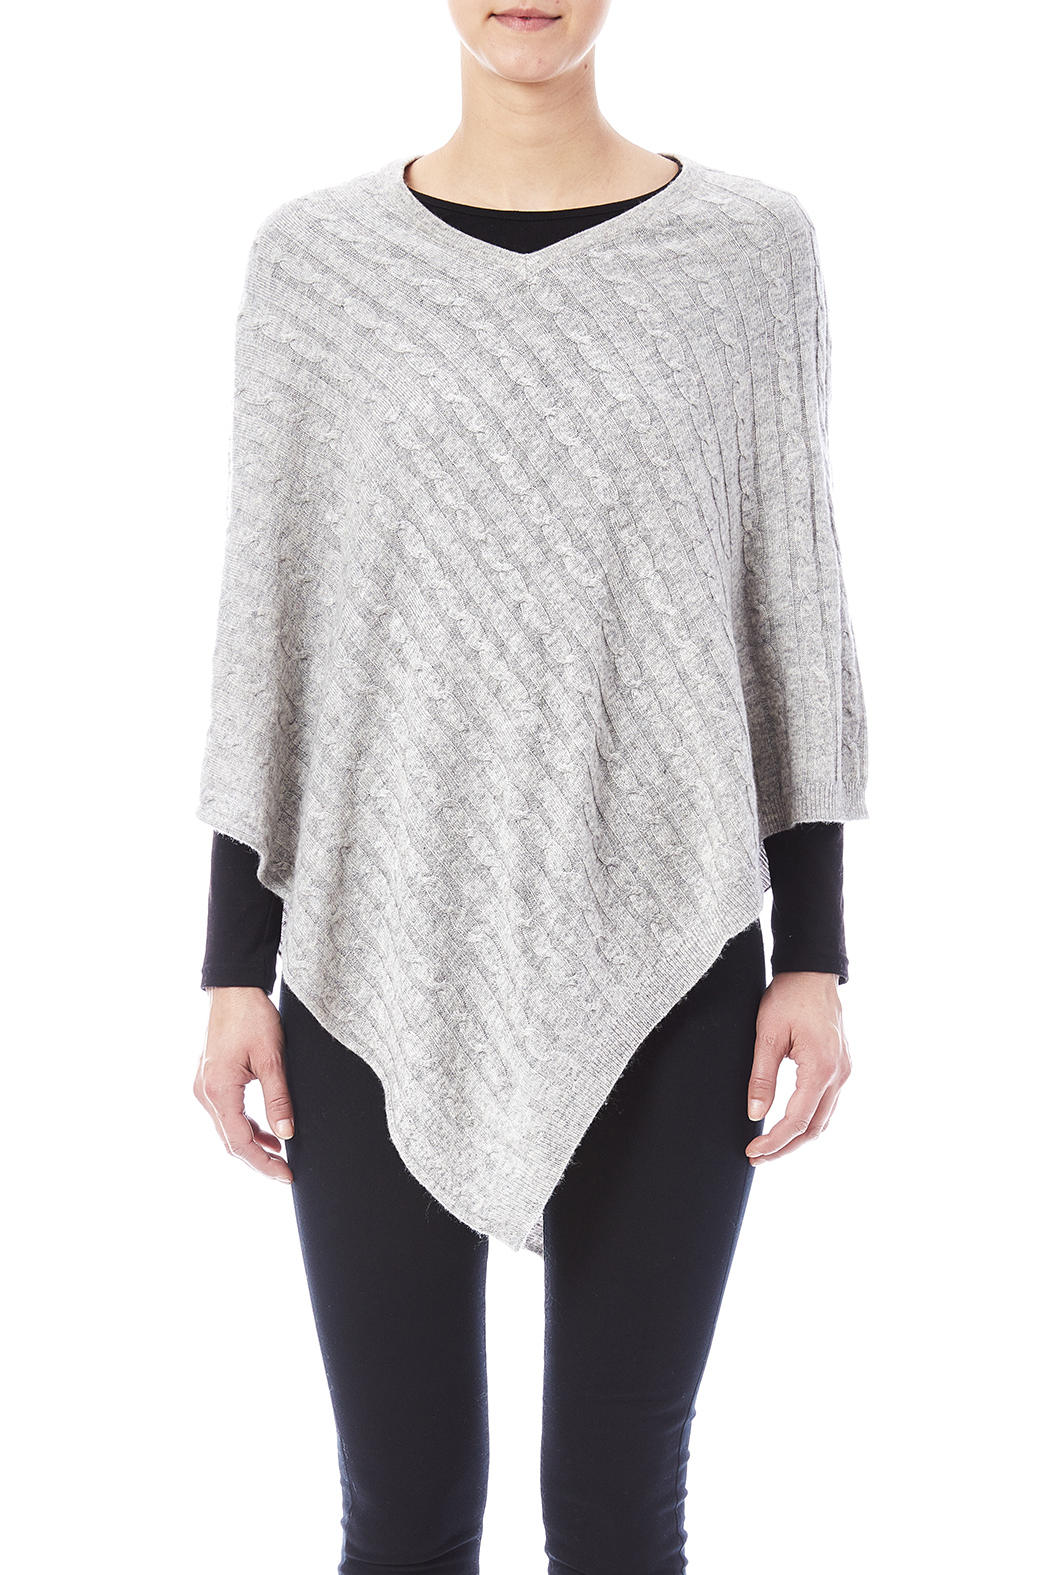 Venezia Cashmere Cashmere Cable-Knit Poncho - Side Cropped Image